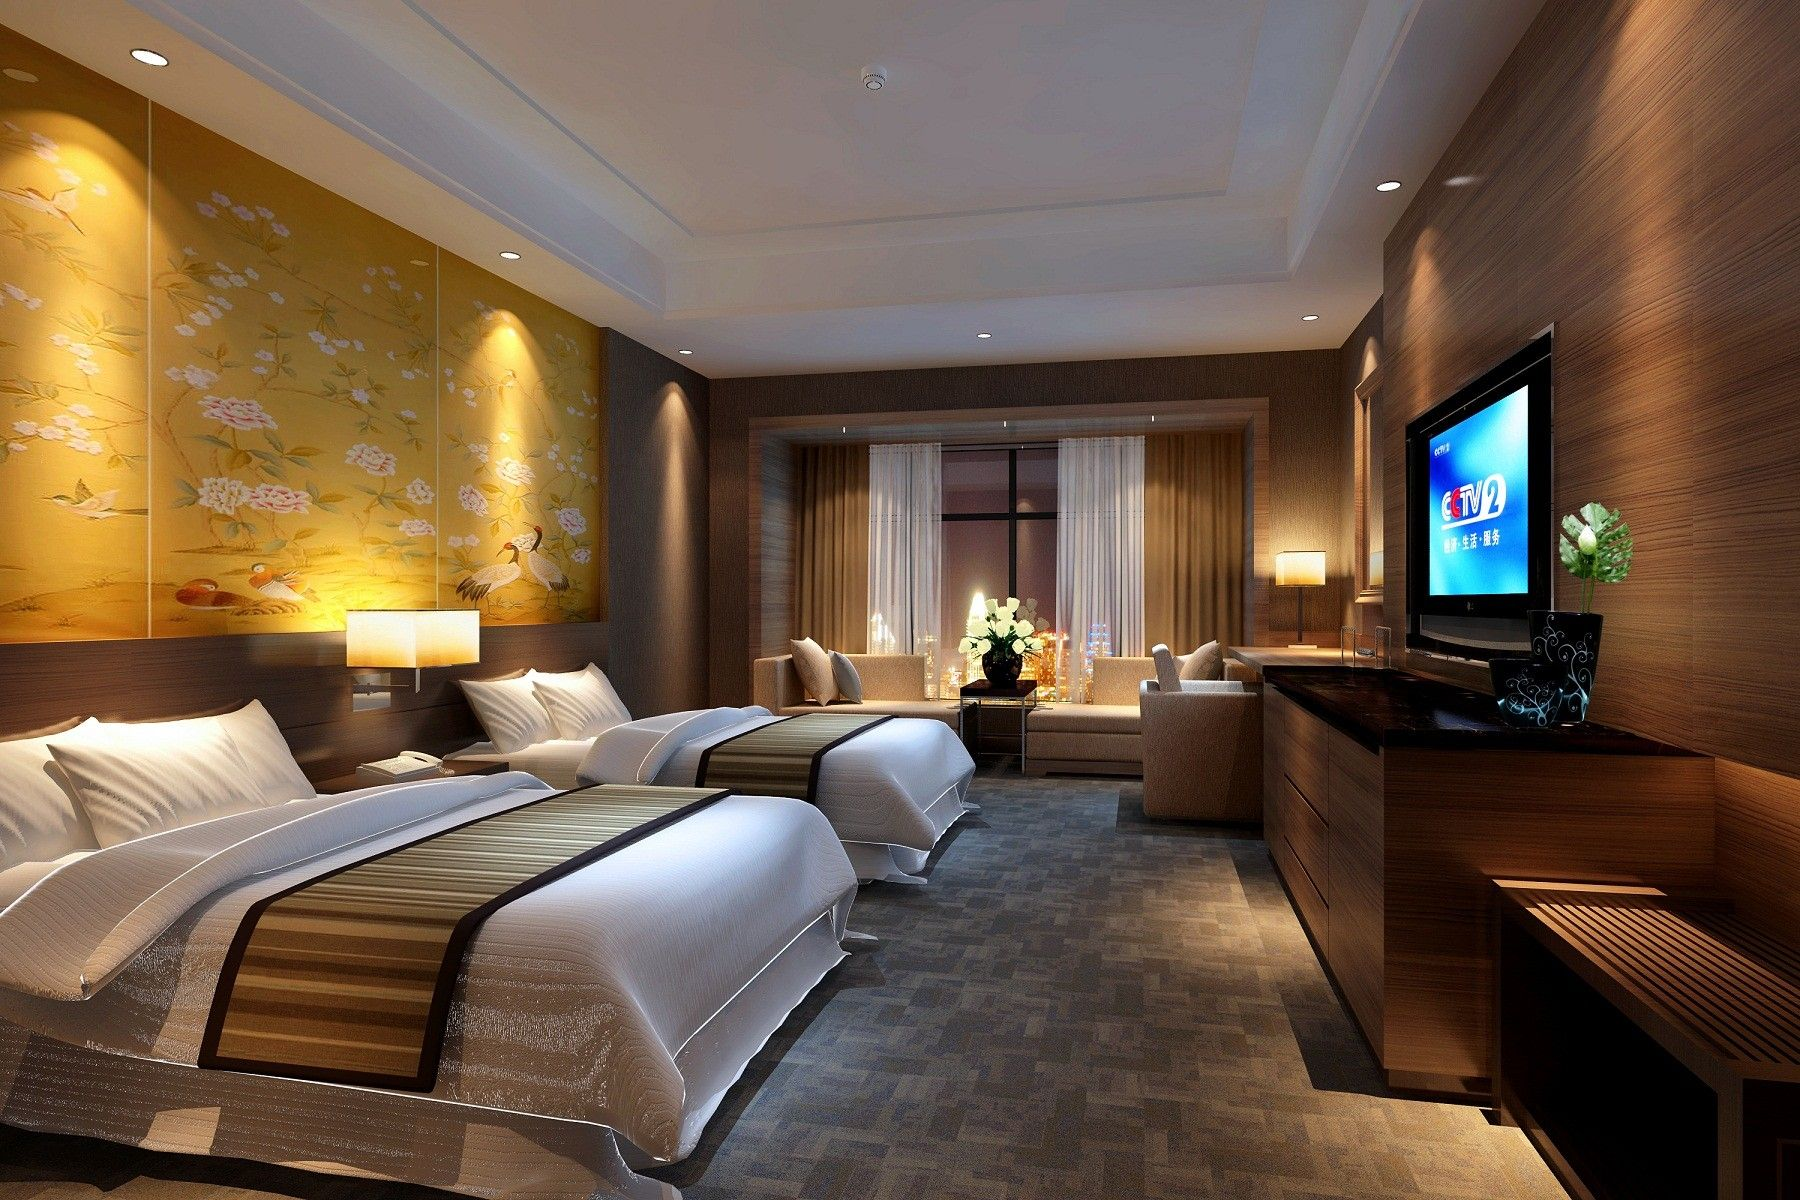 Hotel Bedroom Furniture As Living Room Furniture With